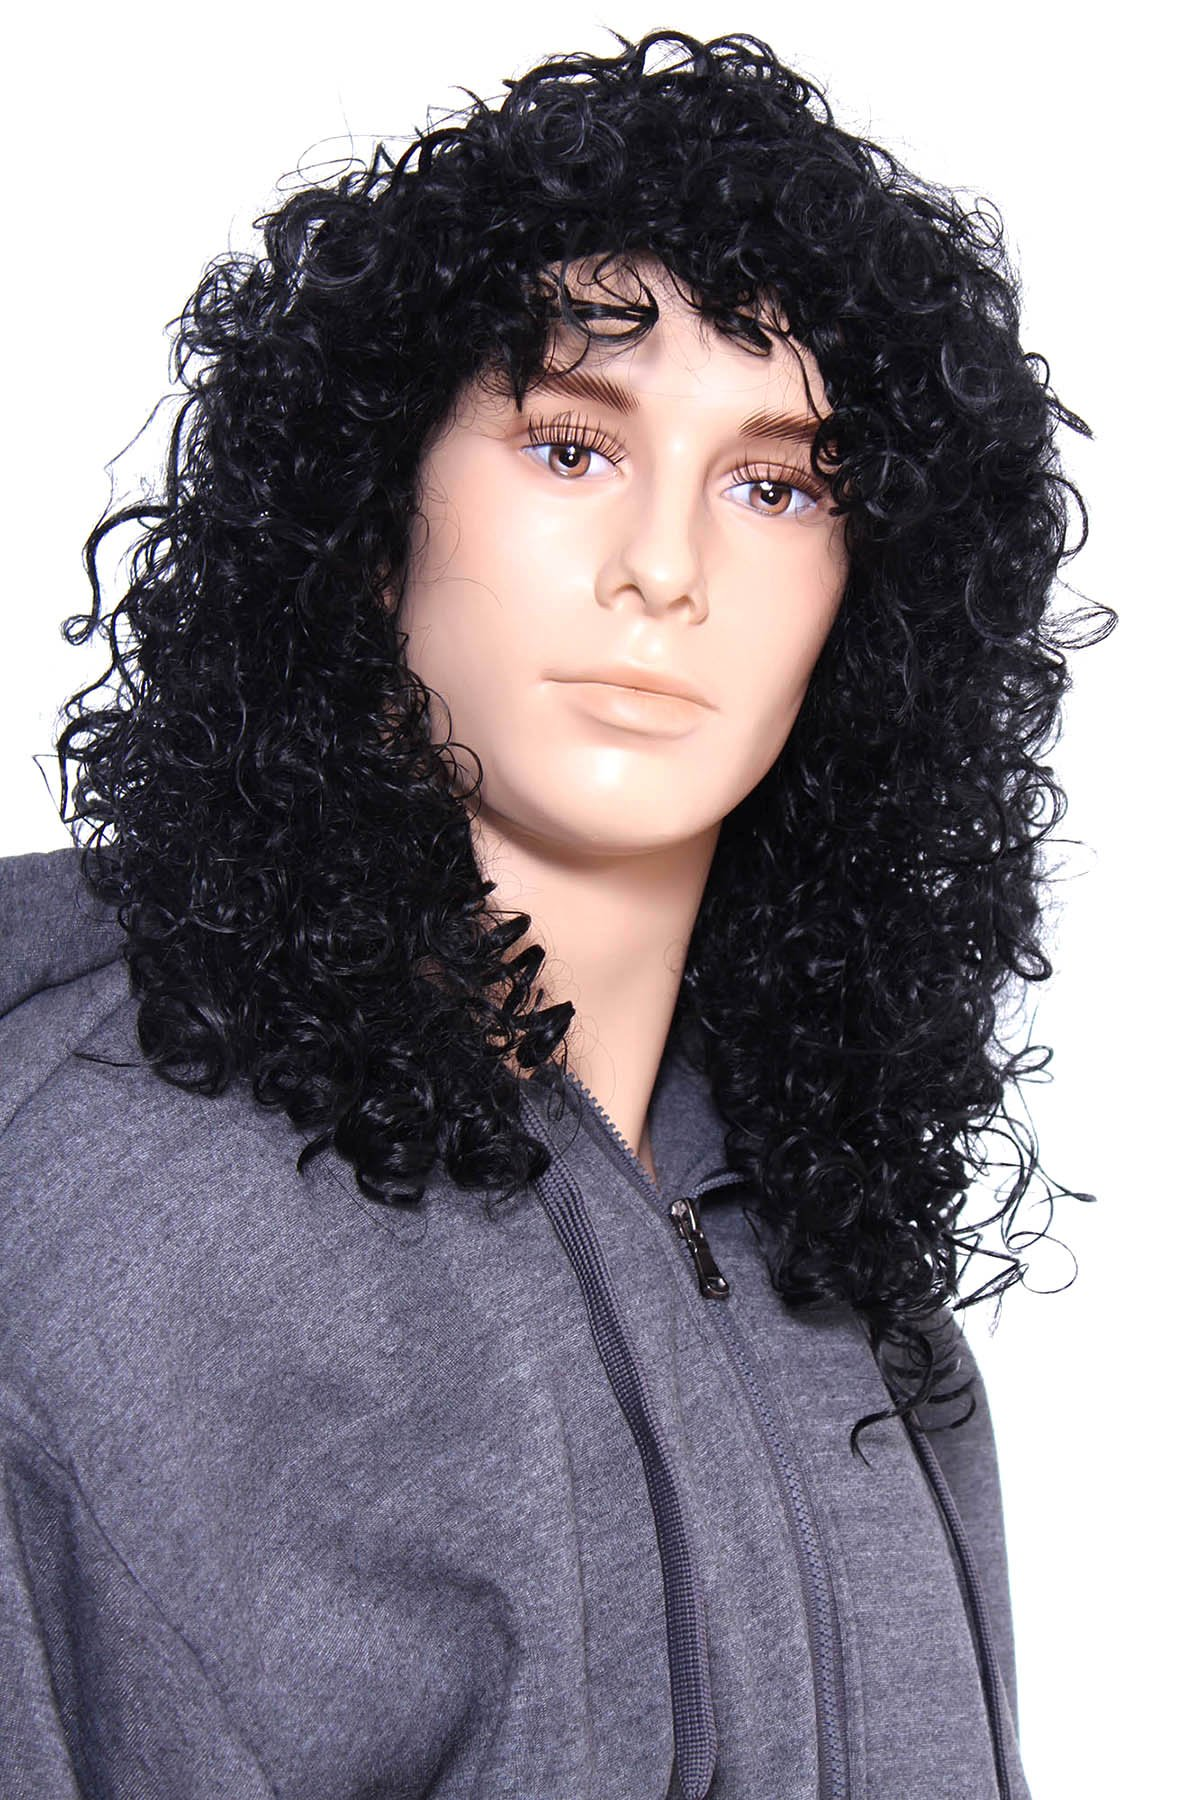 Toppers Deluxe Unisex Long Curly Rocker Wig for Costumes Cosplay and Halloween Jet Black